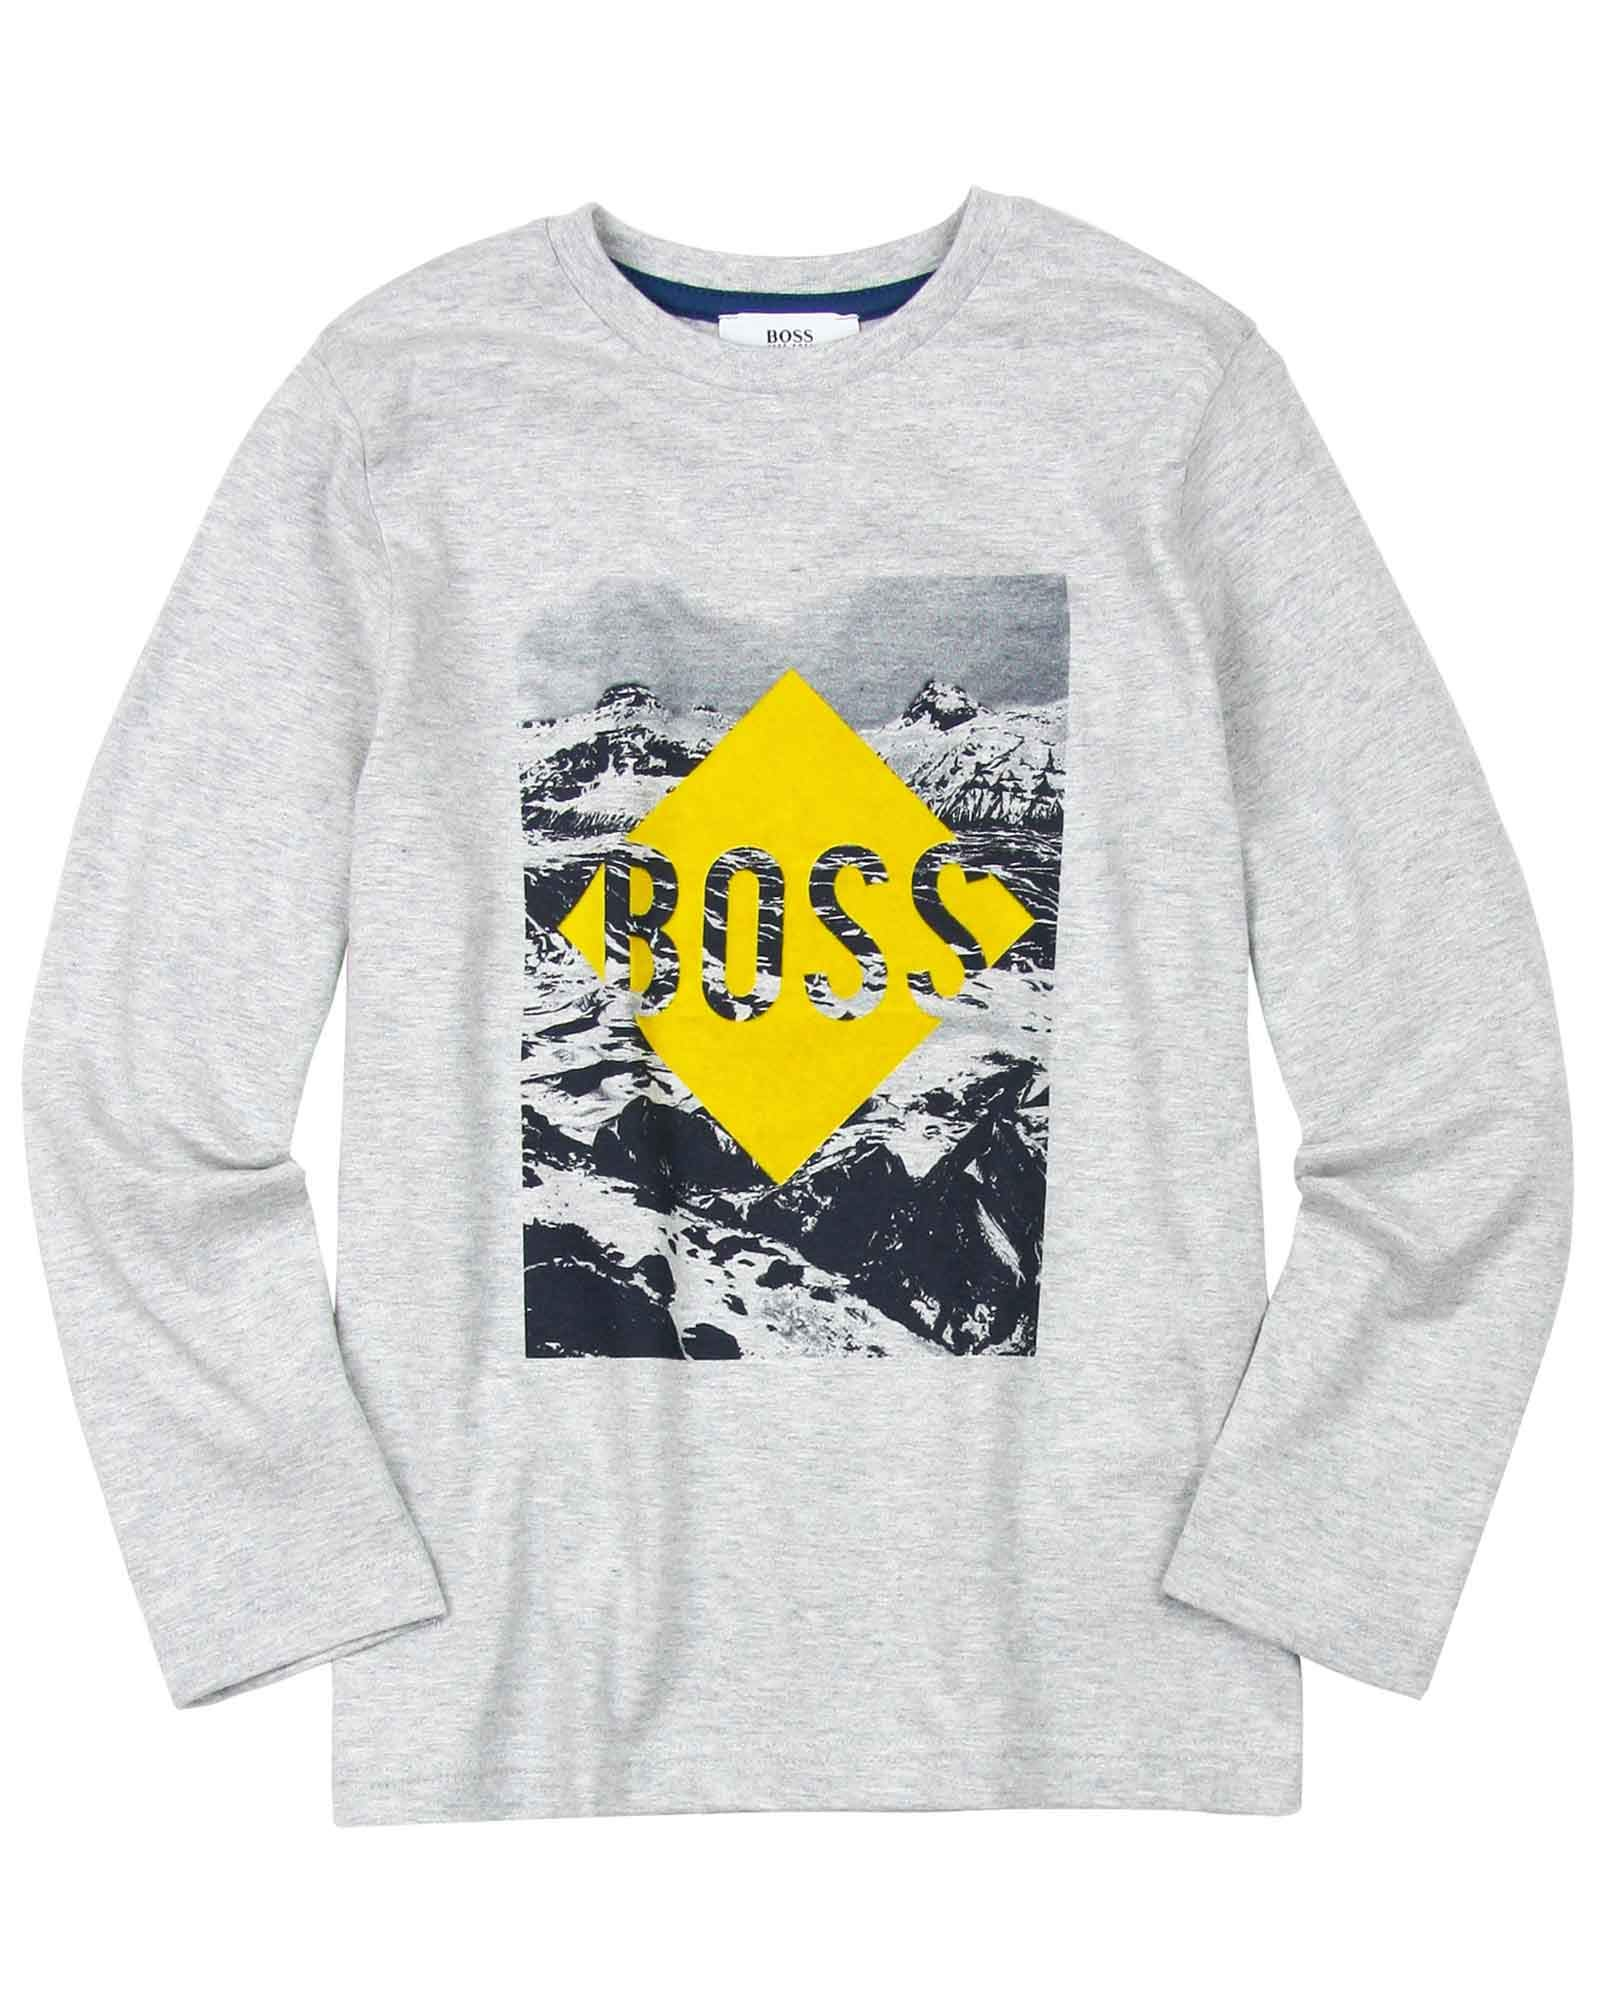 BOSS Boys T-Shirt with Mountains Print, Sizes 6-16 - 6